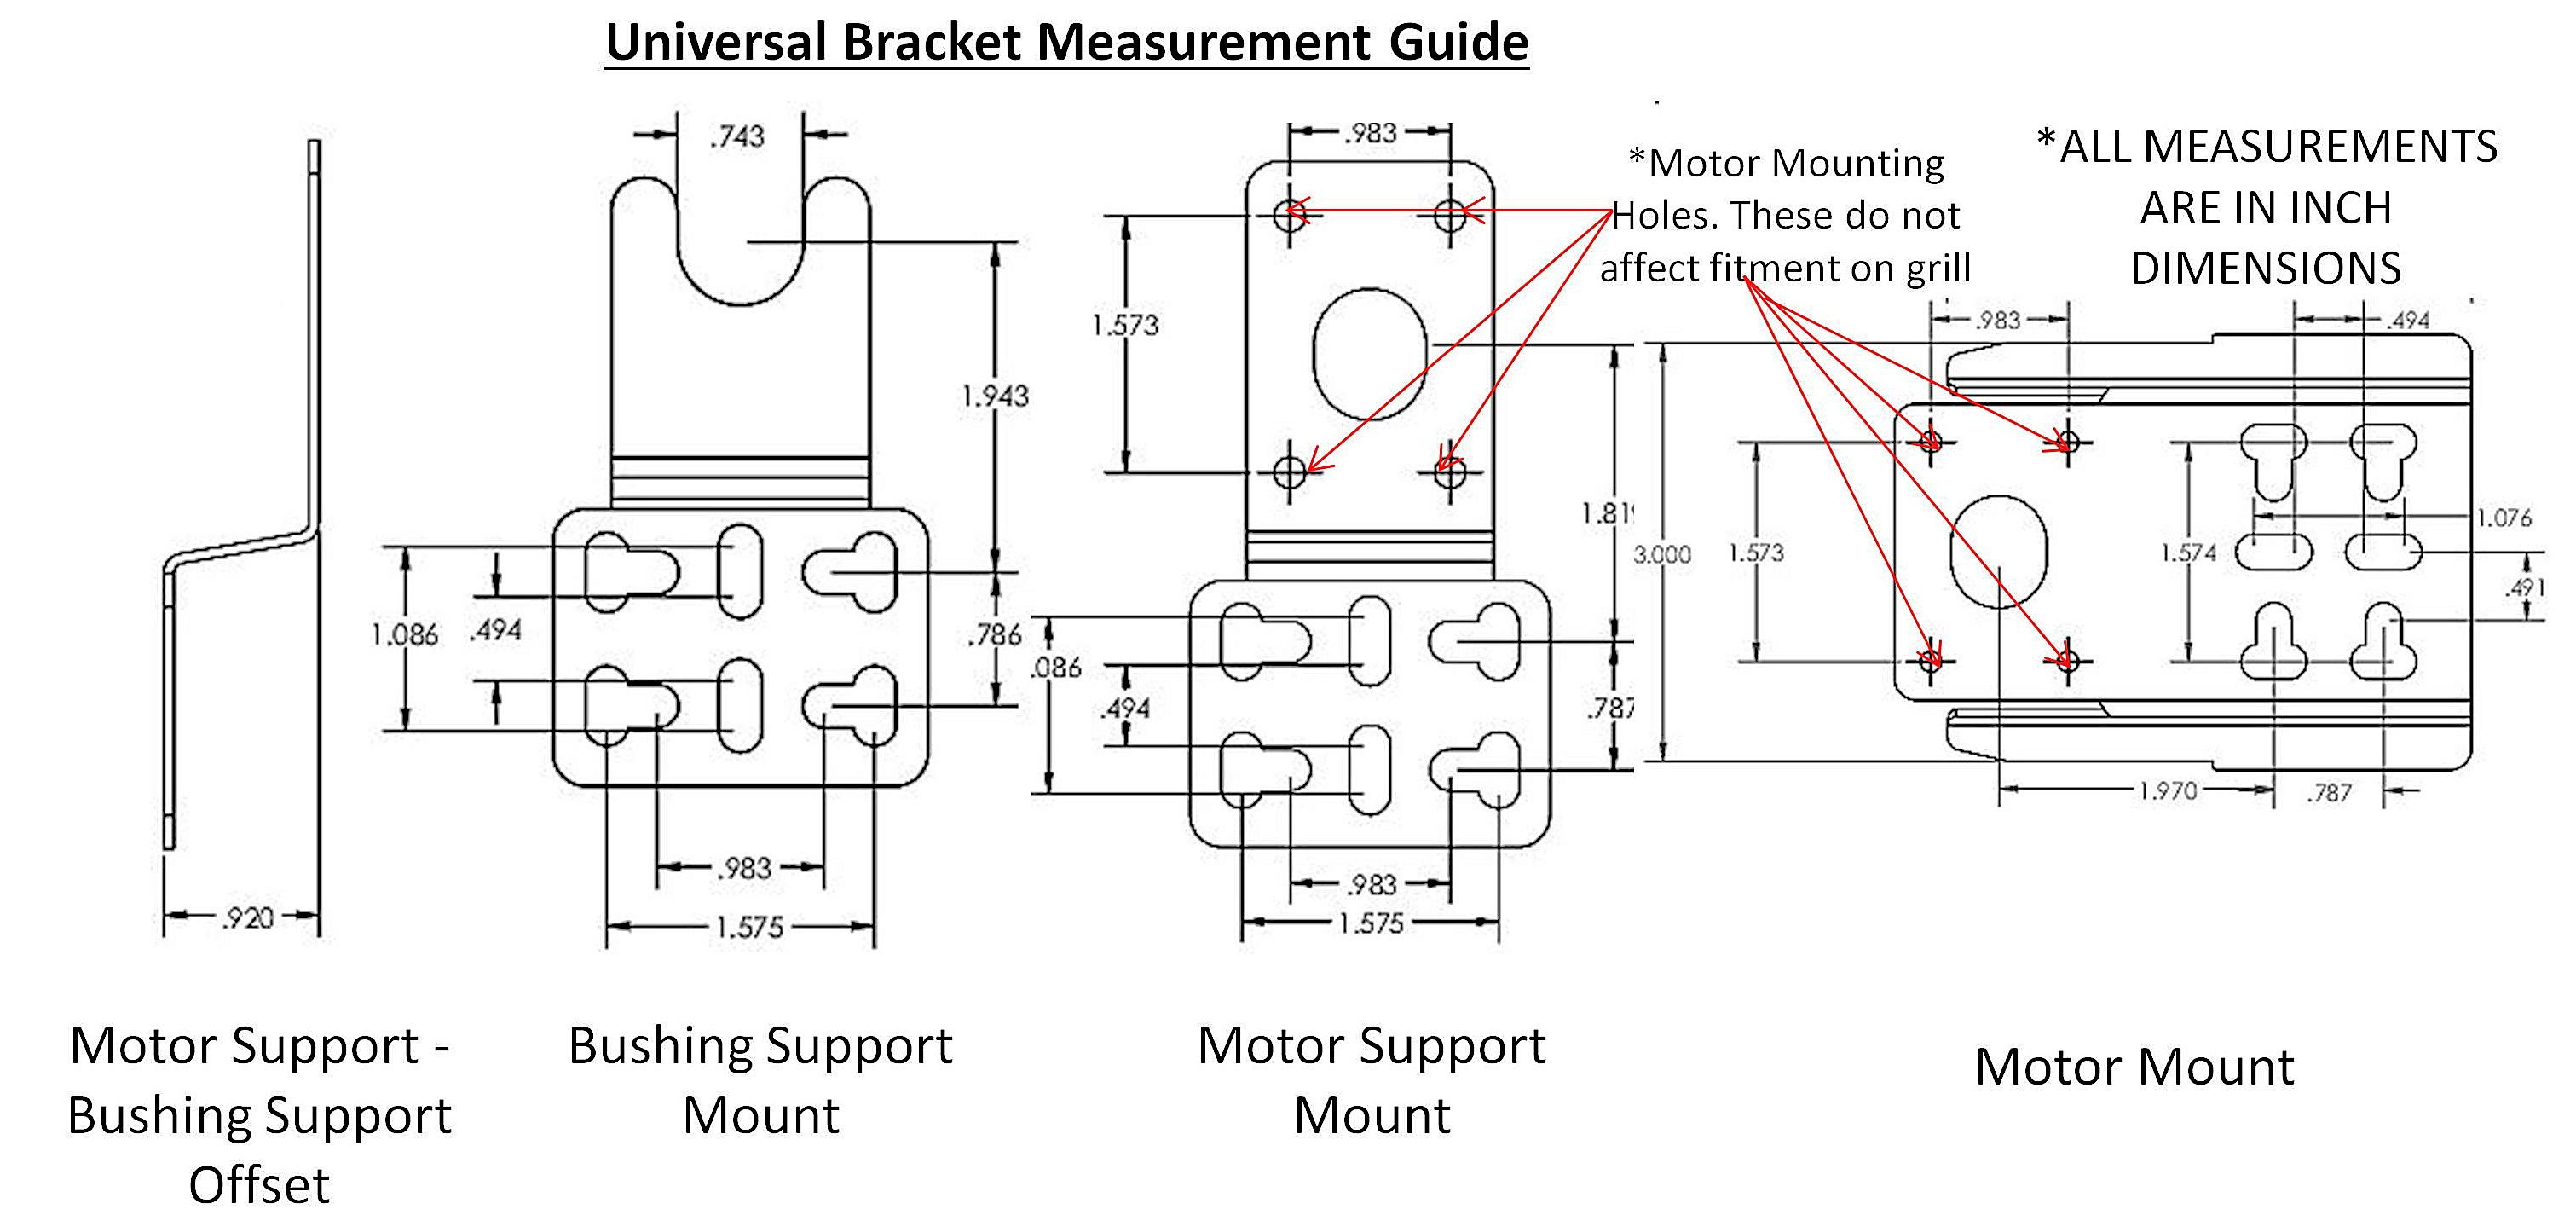 Complete Bracket Set Schematic